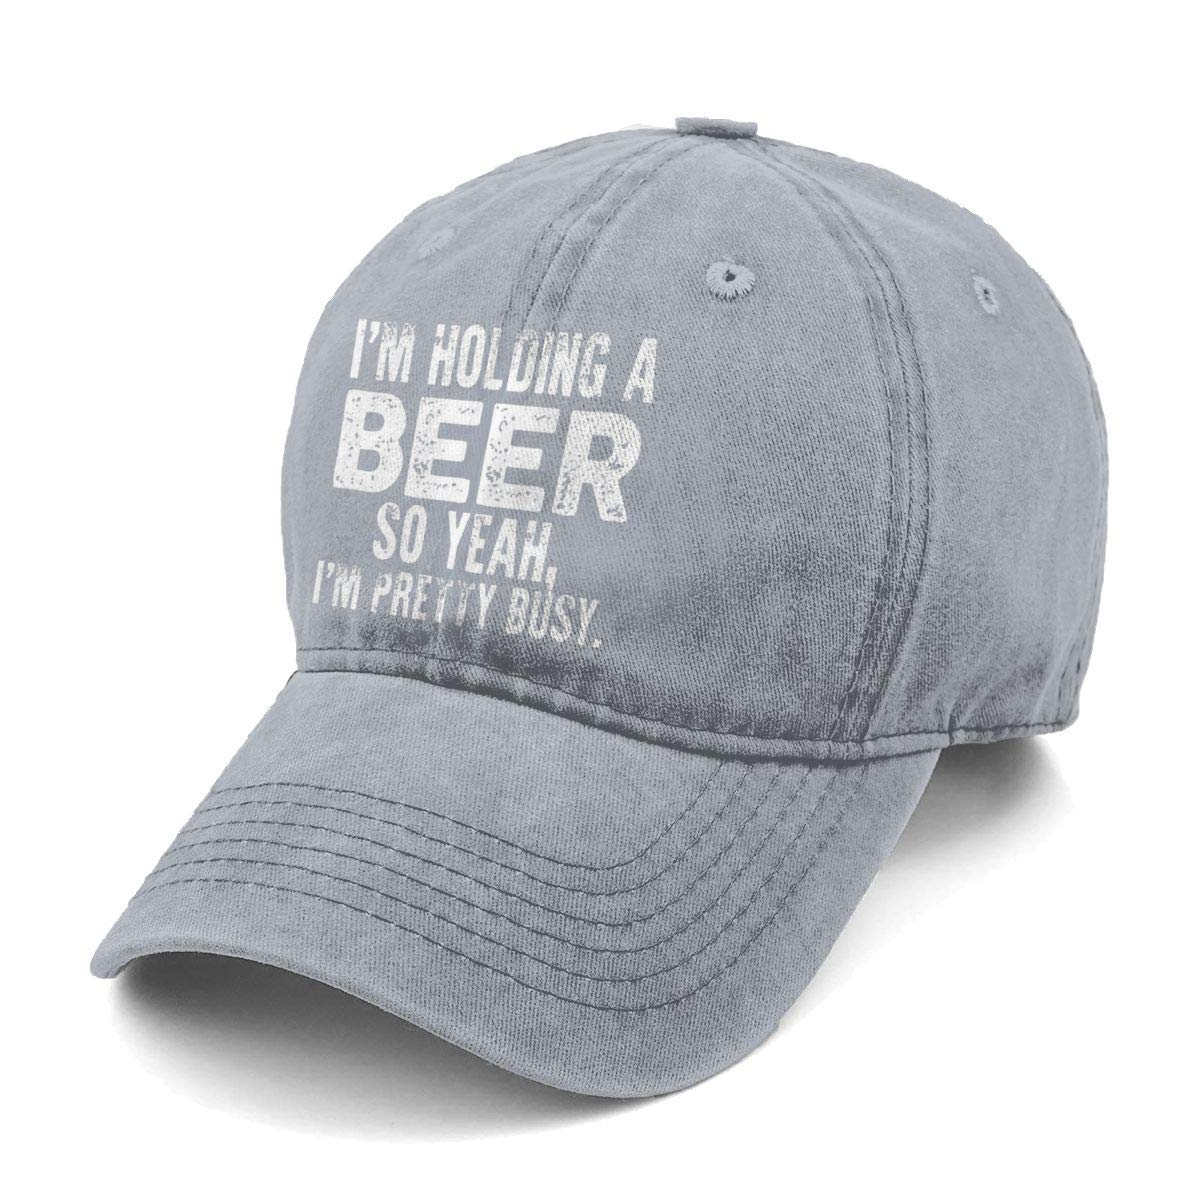 Unisex Im Holding A Beer So Yeah Im Pretty Busy Denim Hat Adjustable Washed Dyed Cotton Dad Baseball Caps